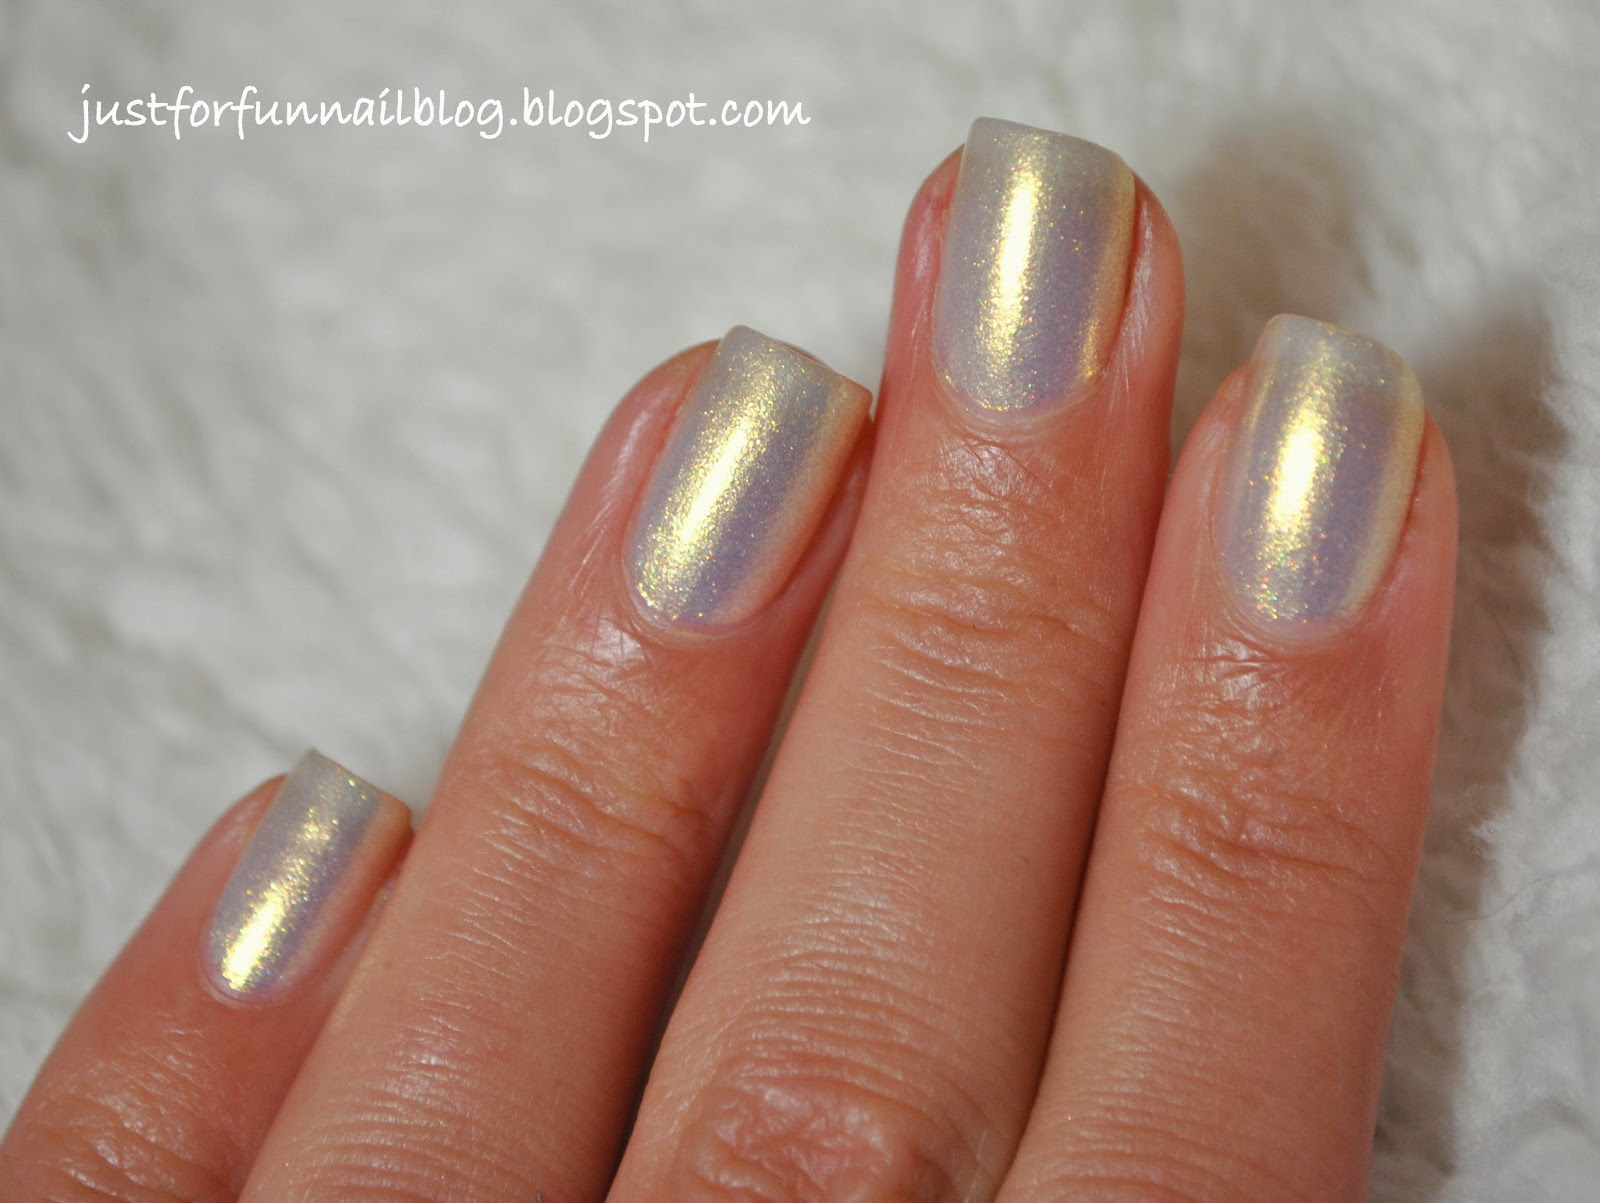 OPI - Ski Slope Sweetie: Swatch & Review